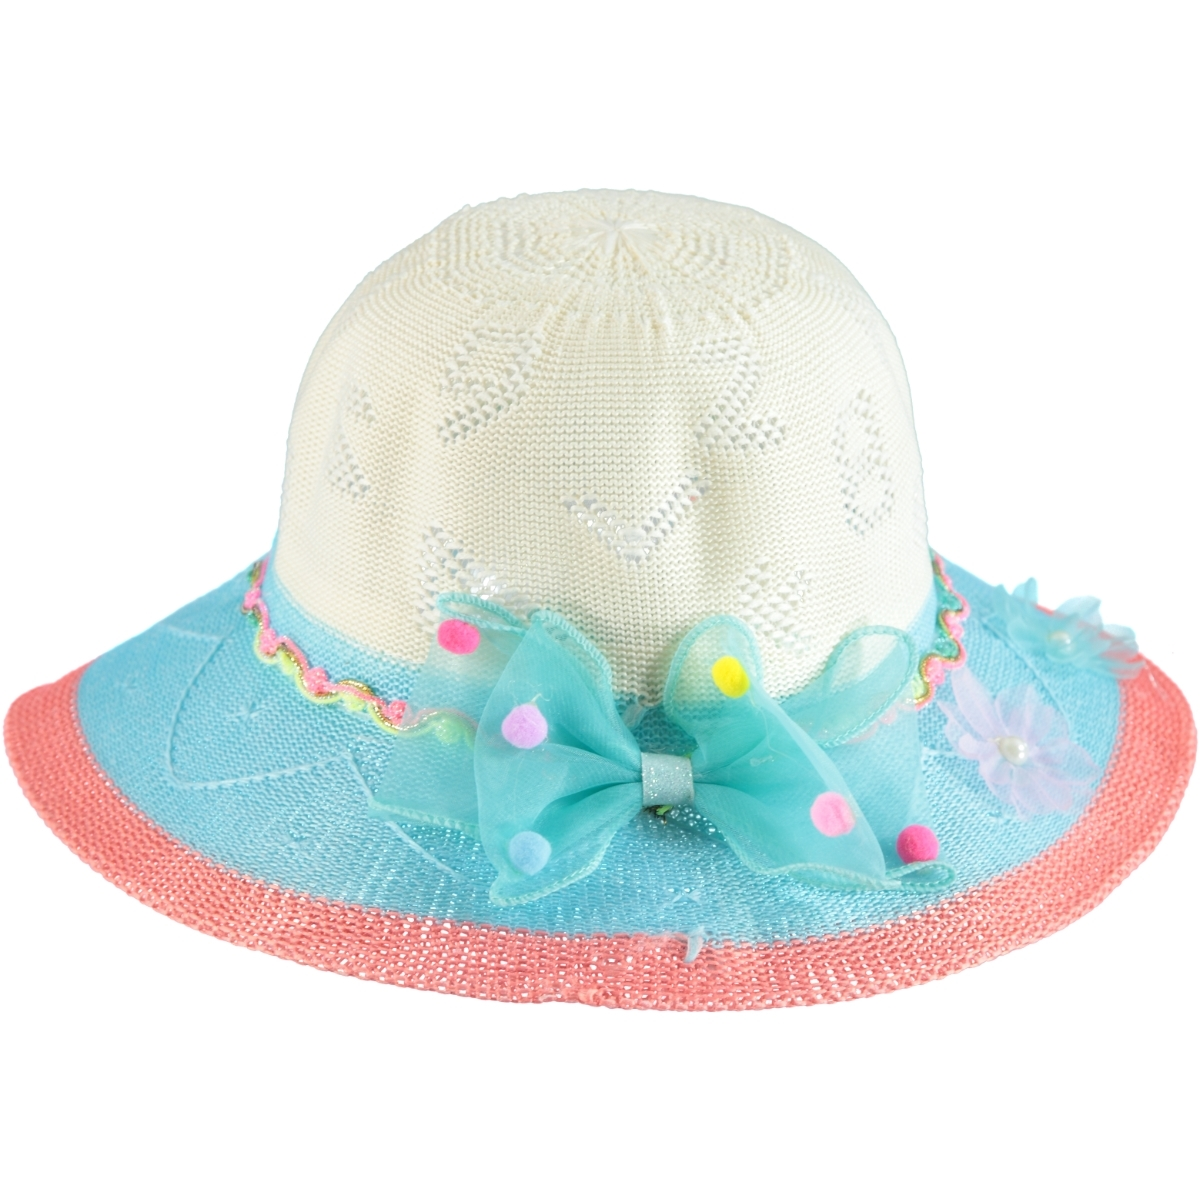 Kitti Girl Straw Hat Turquoise 6-12 Years Old